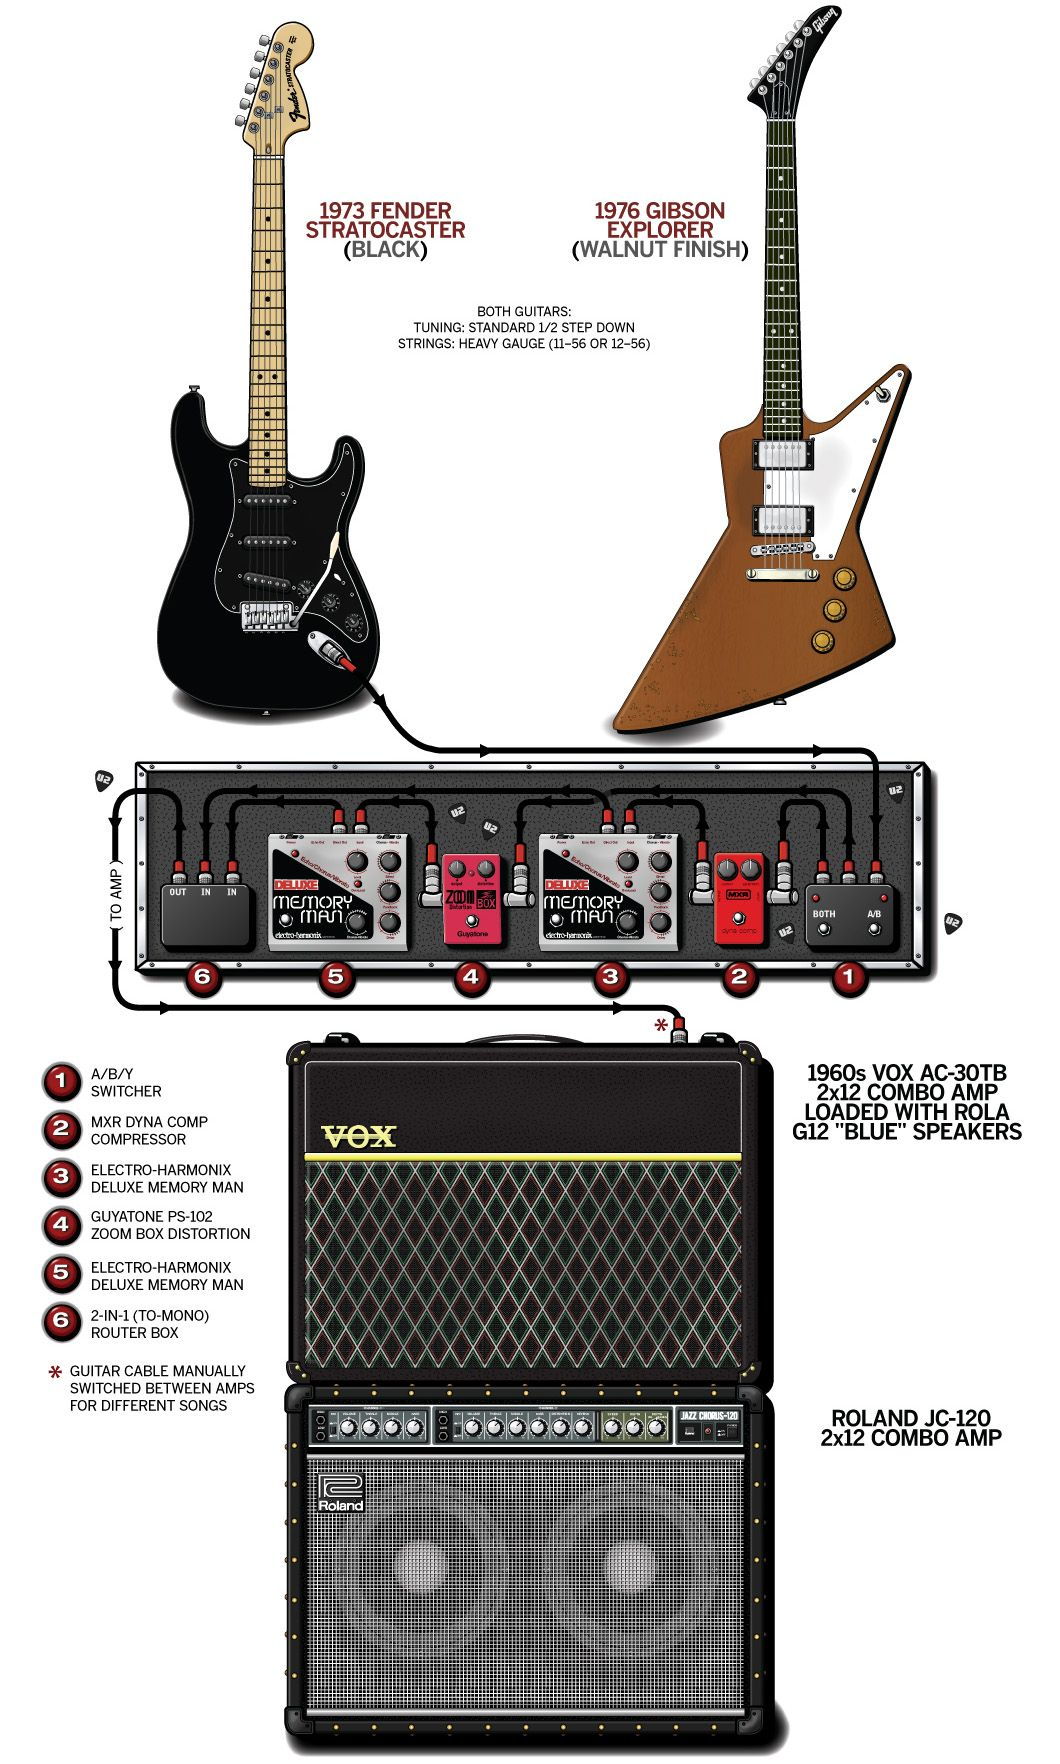 diagram guitar rig rundown